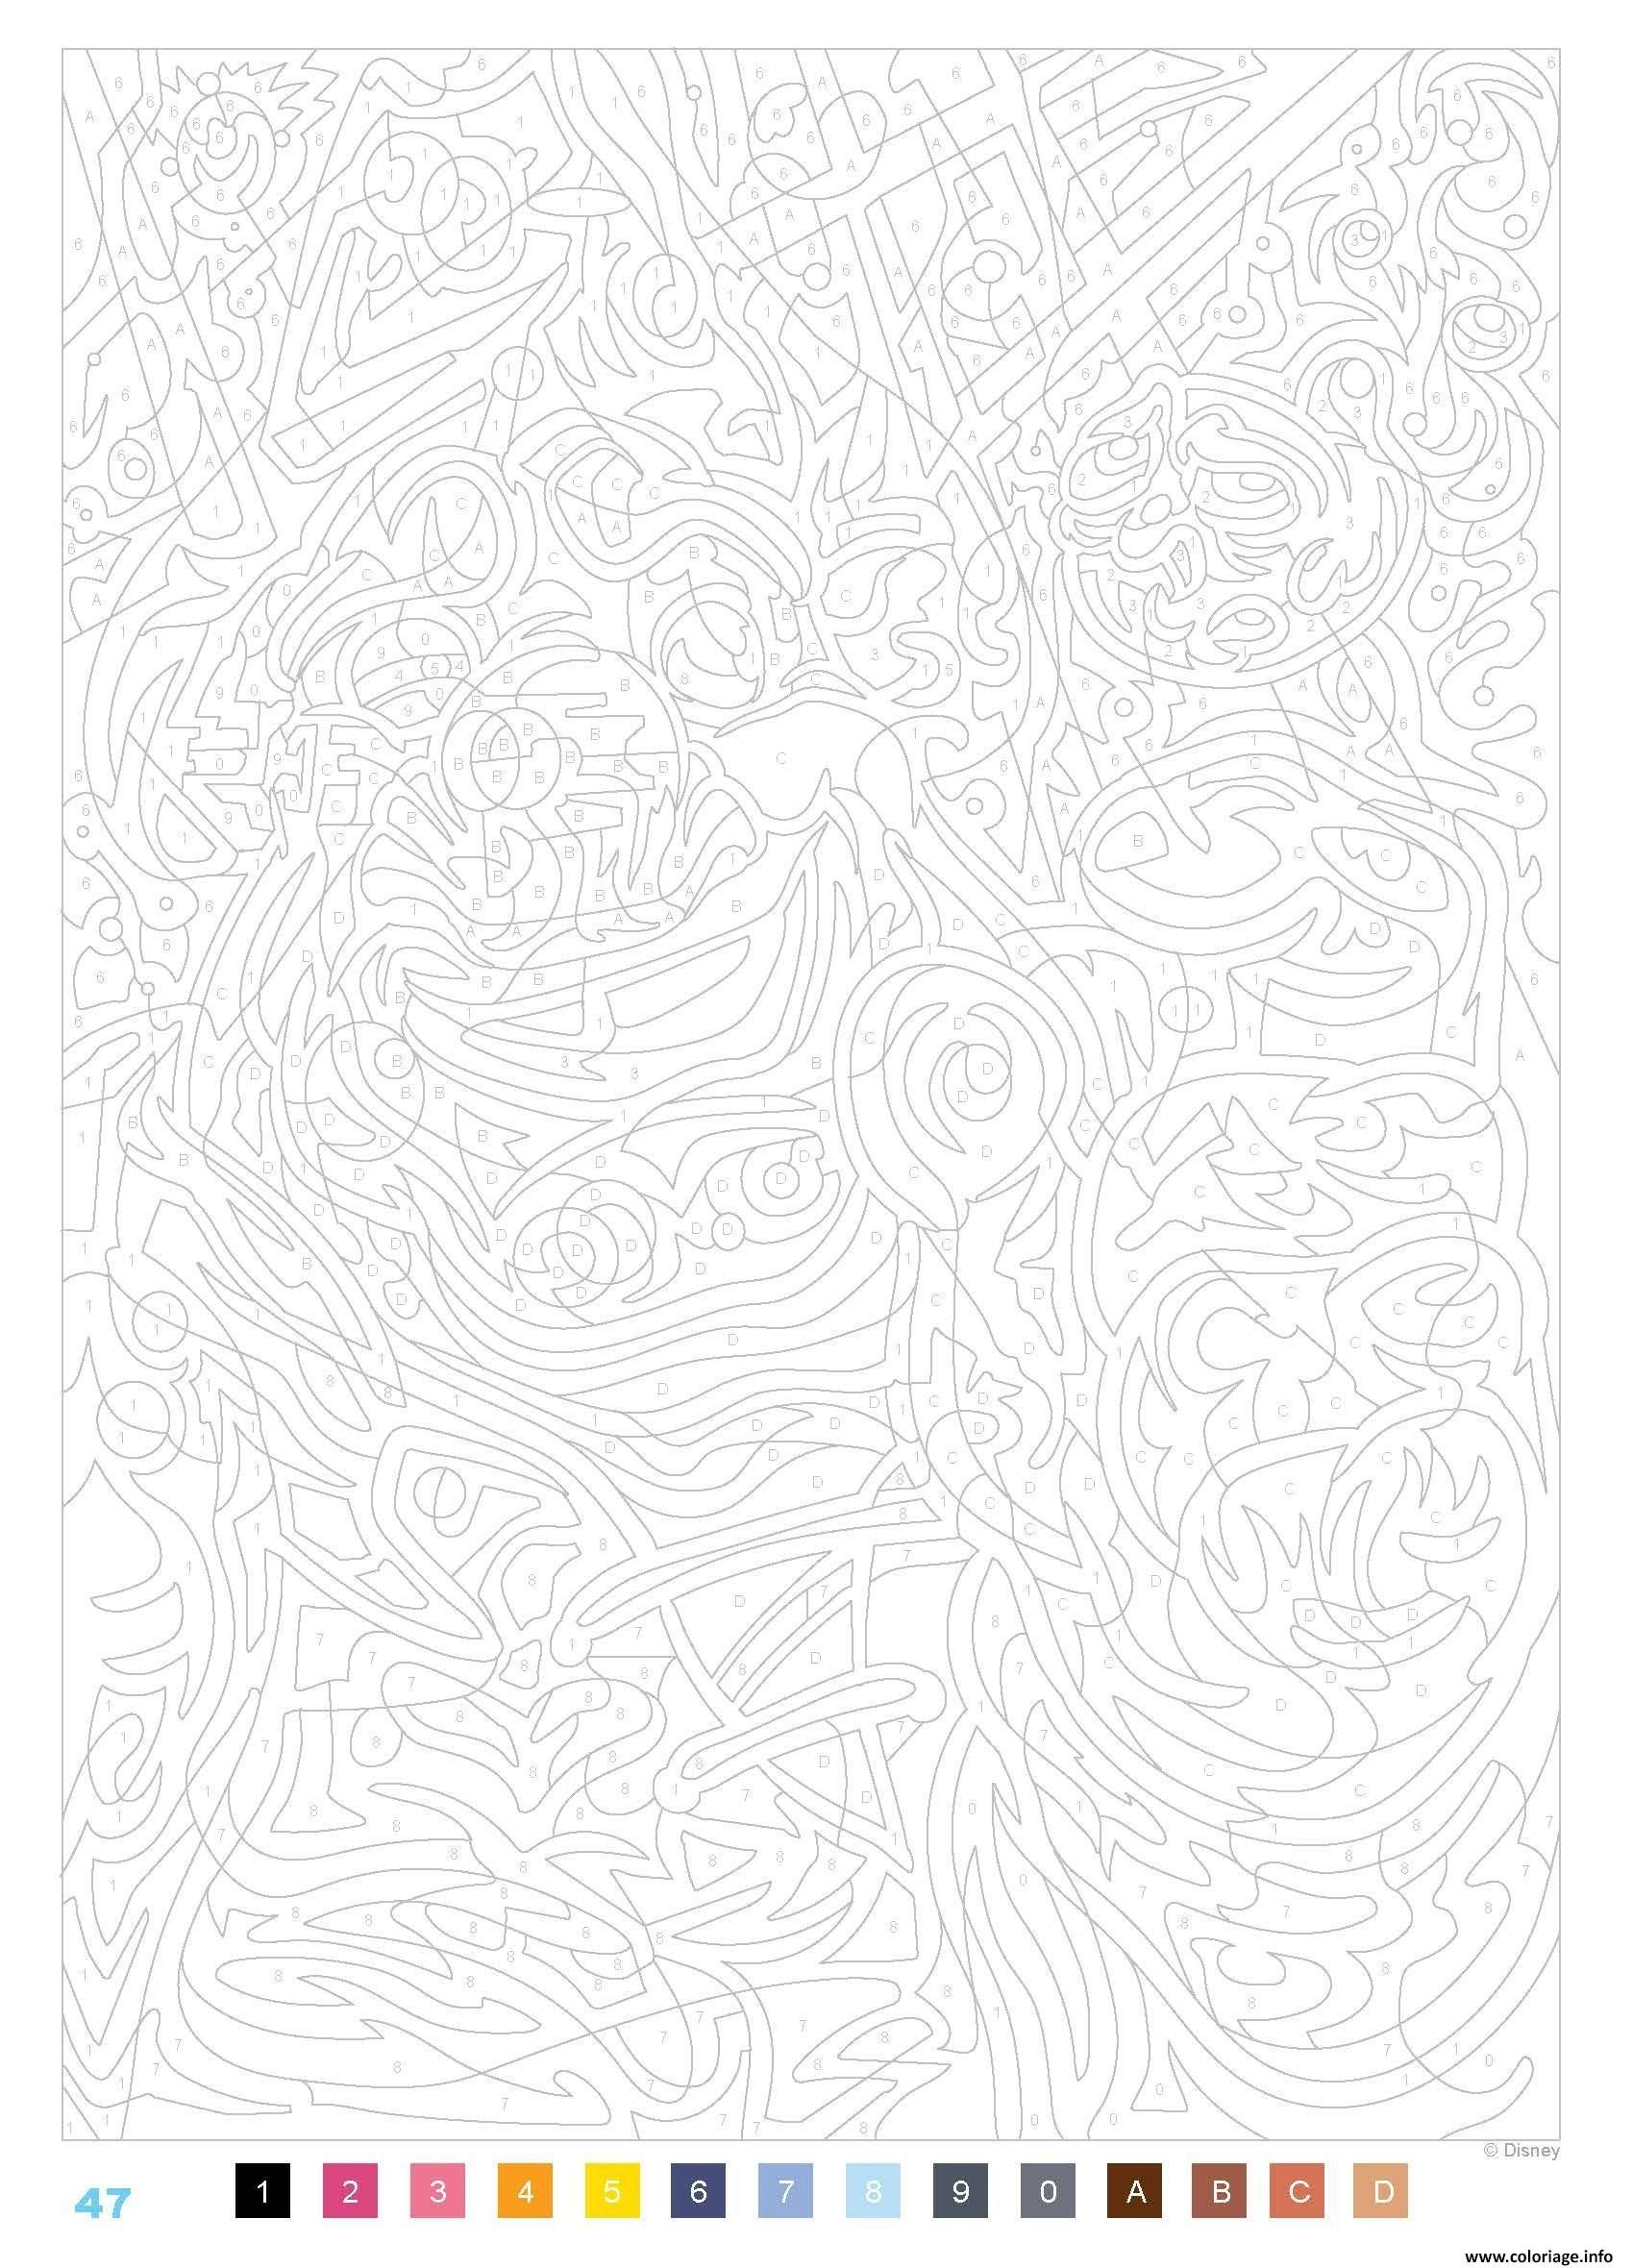 Pin by Laura Génard on Coloriage disney  Coloring books, Color by